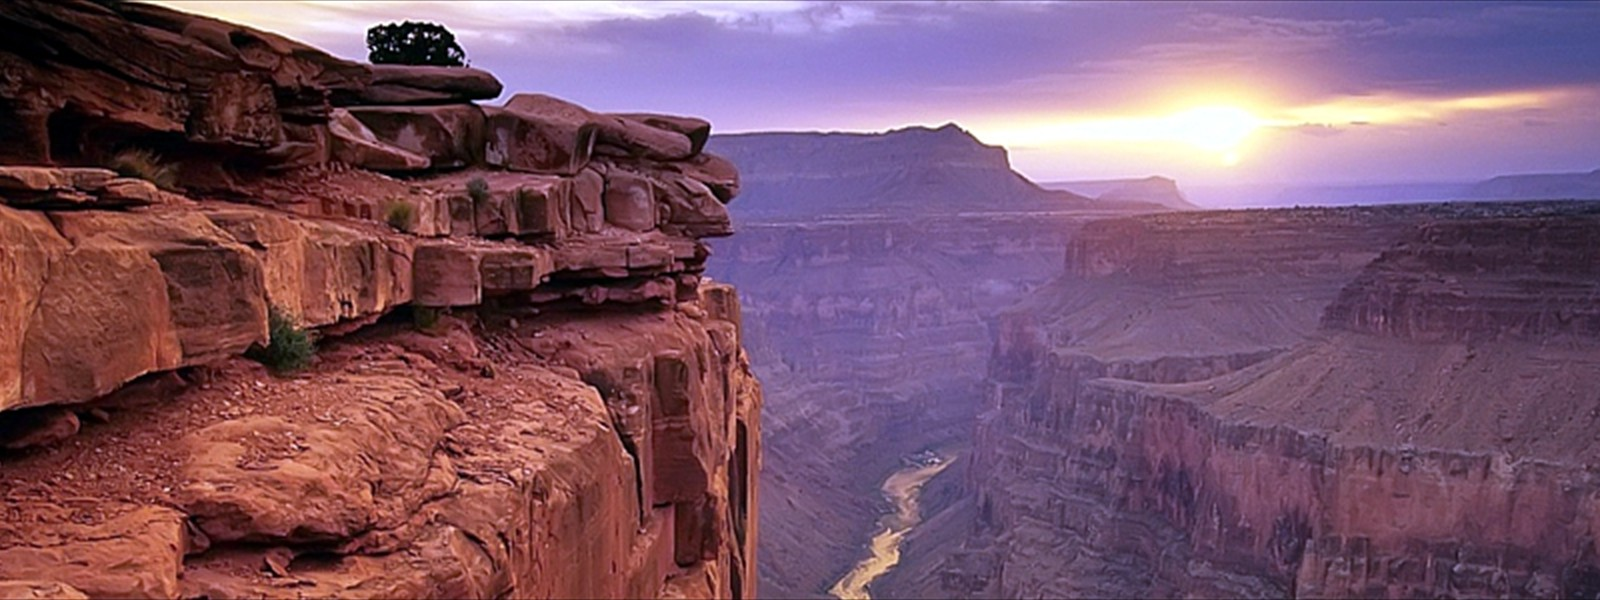 grand_canyon_sunset_1920_x_1200_widescreen-1280x800